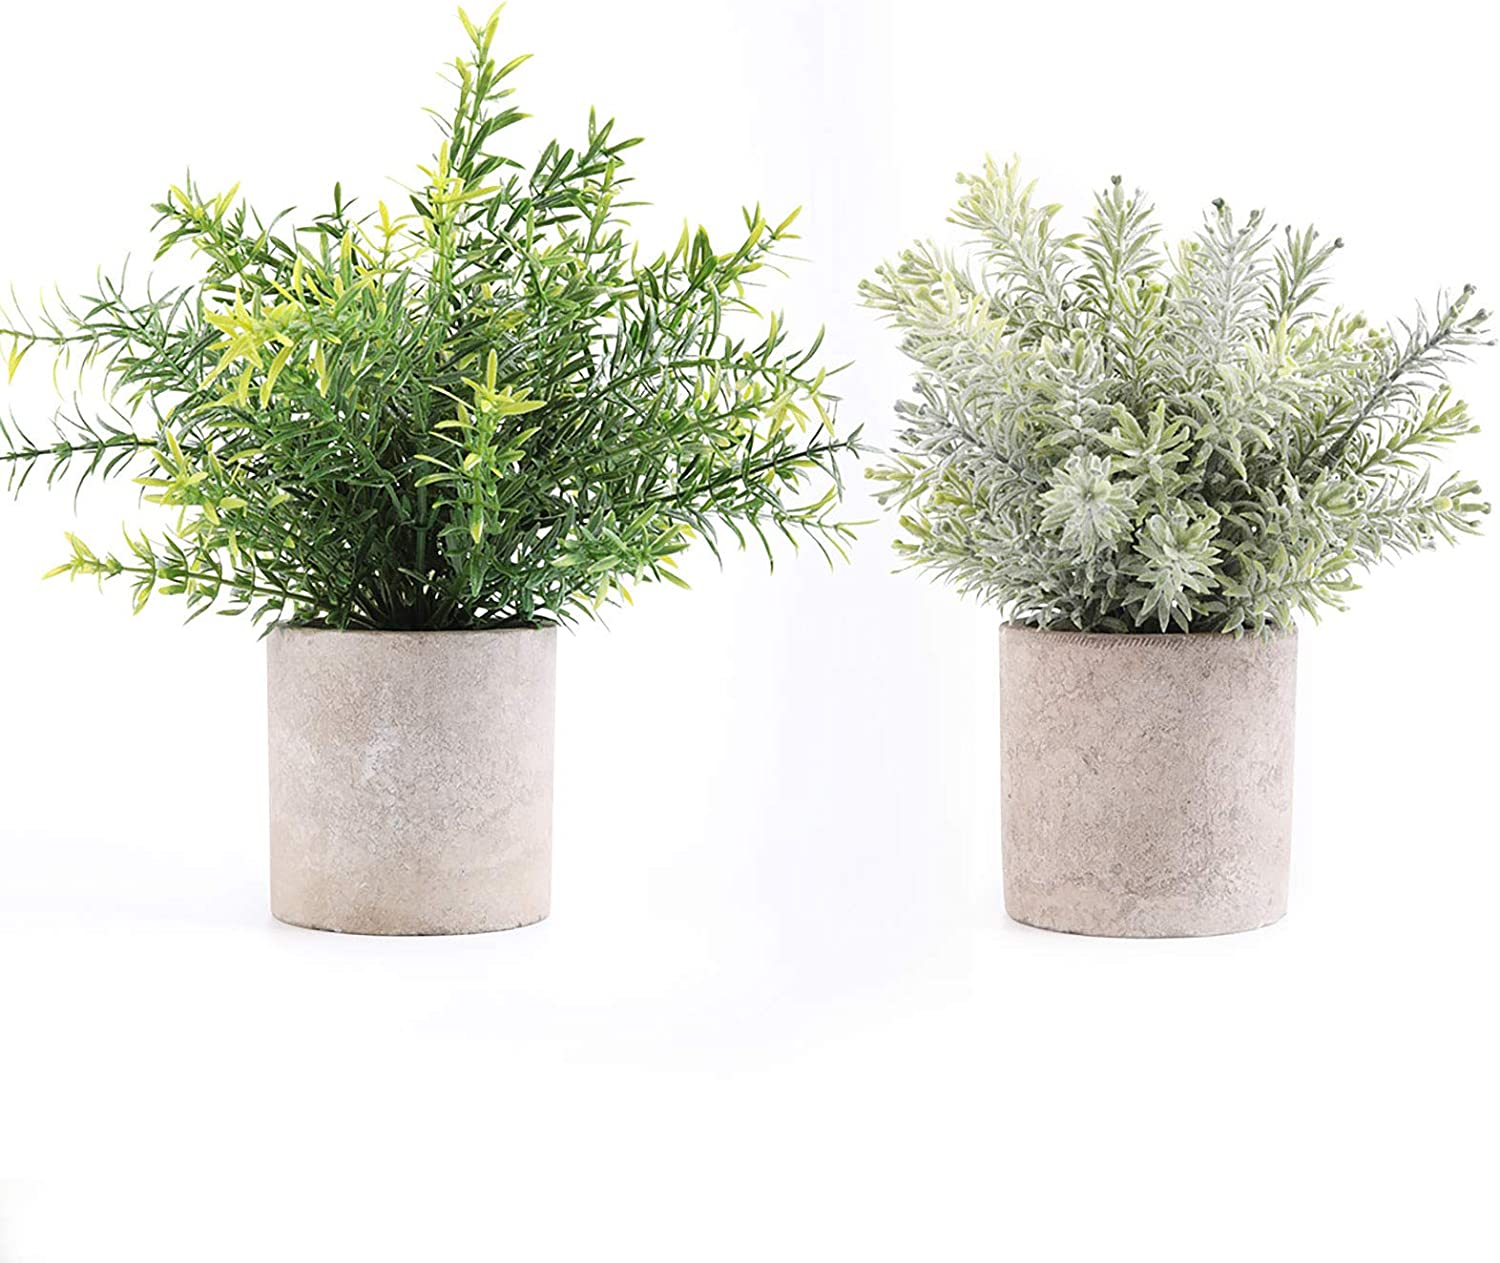 YCS Artificial Plants Potted Faux Fake Mini Plant Bicolor Mini Potted Plants That Includes Artificial Pine and Rosemary in Gray Pot for House, Farmhouse, Bathroom,Office, Home Decor(Set of 2) …